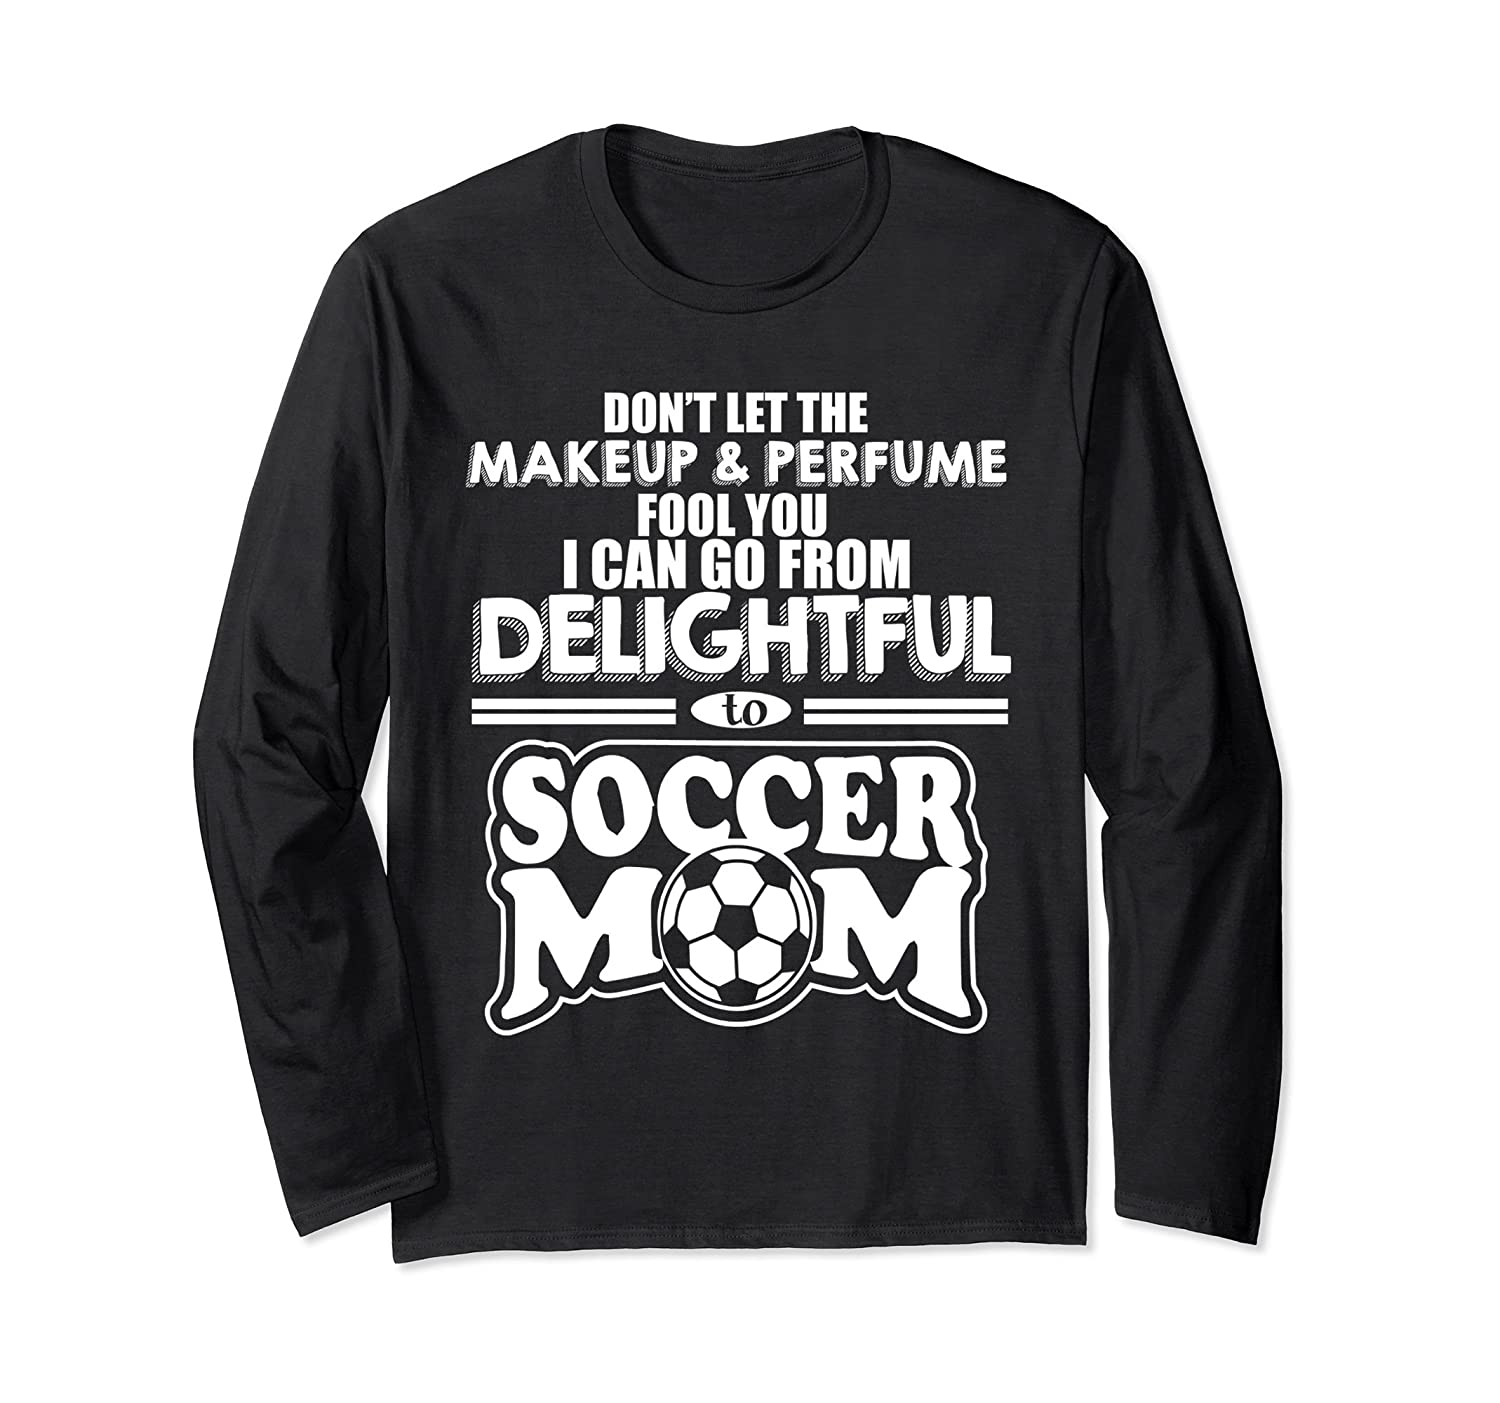 Delightful To Soccer Mom Funny Long Sleeve Soccer Mom Tee-Rose